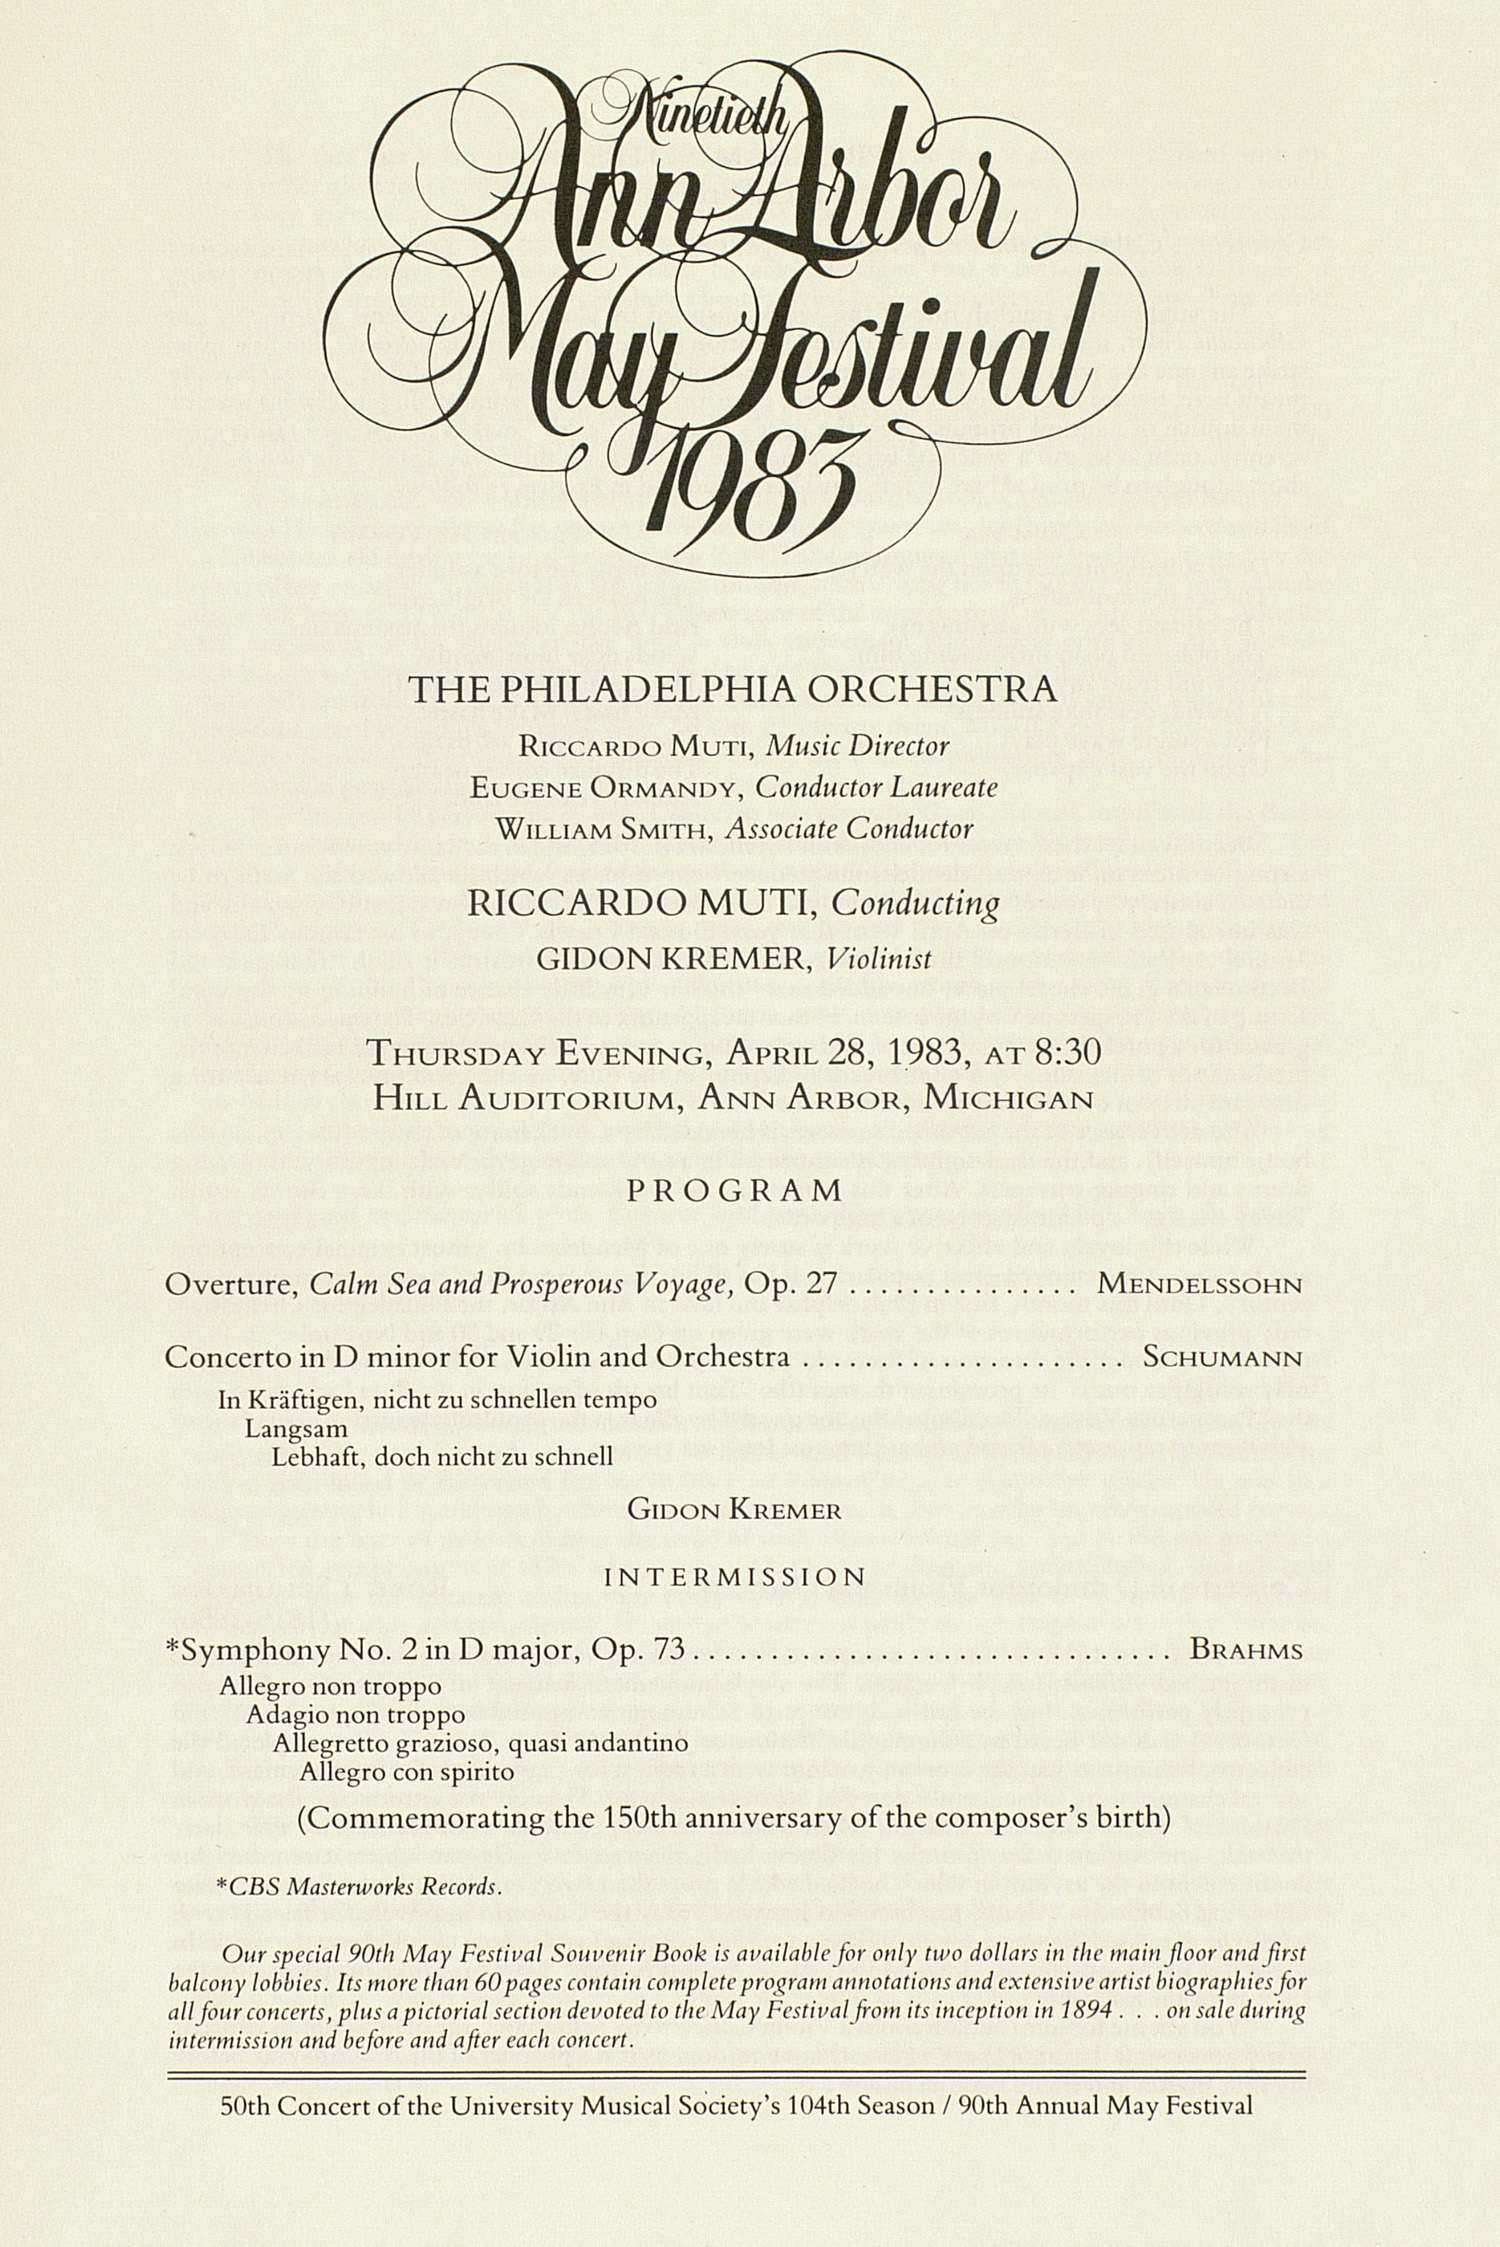 UMS Concert Program, April 28, 1983: Ninetieth Ann Arbor May Festival 1983 -- The Philadelphia Orchestra image